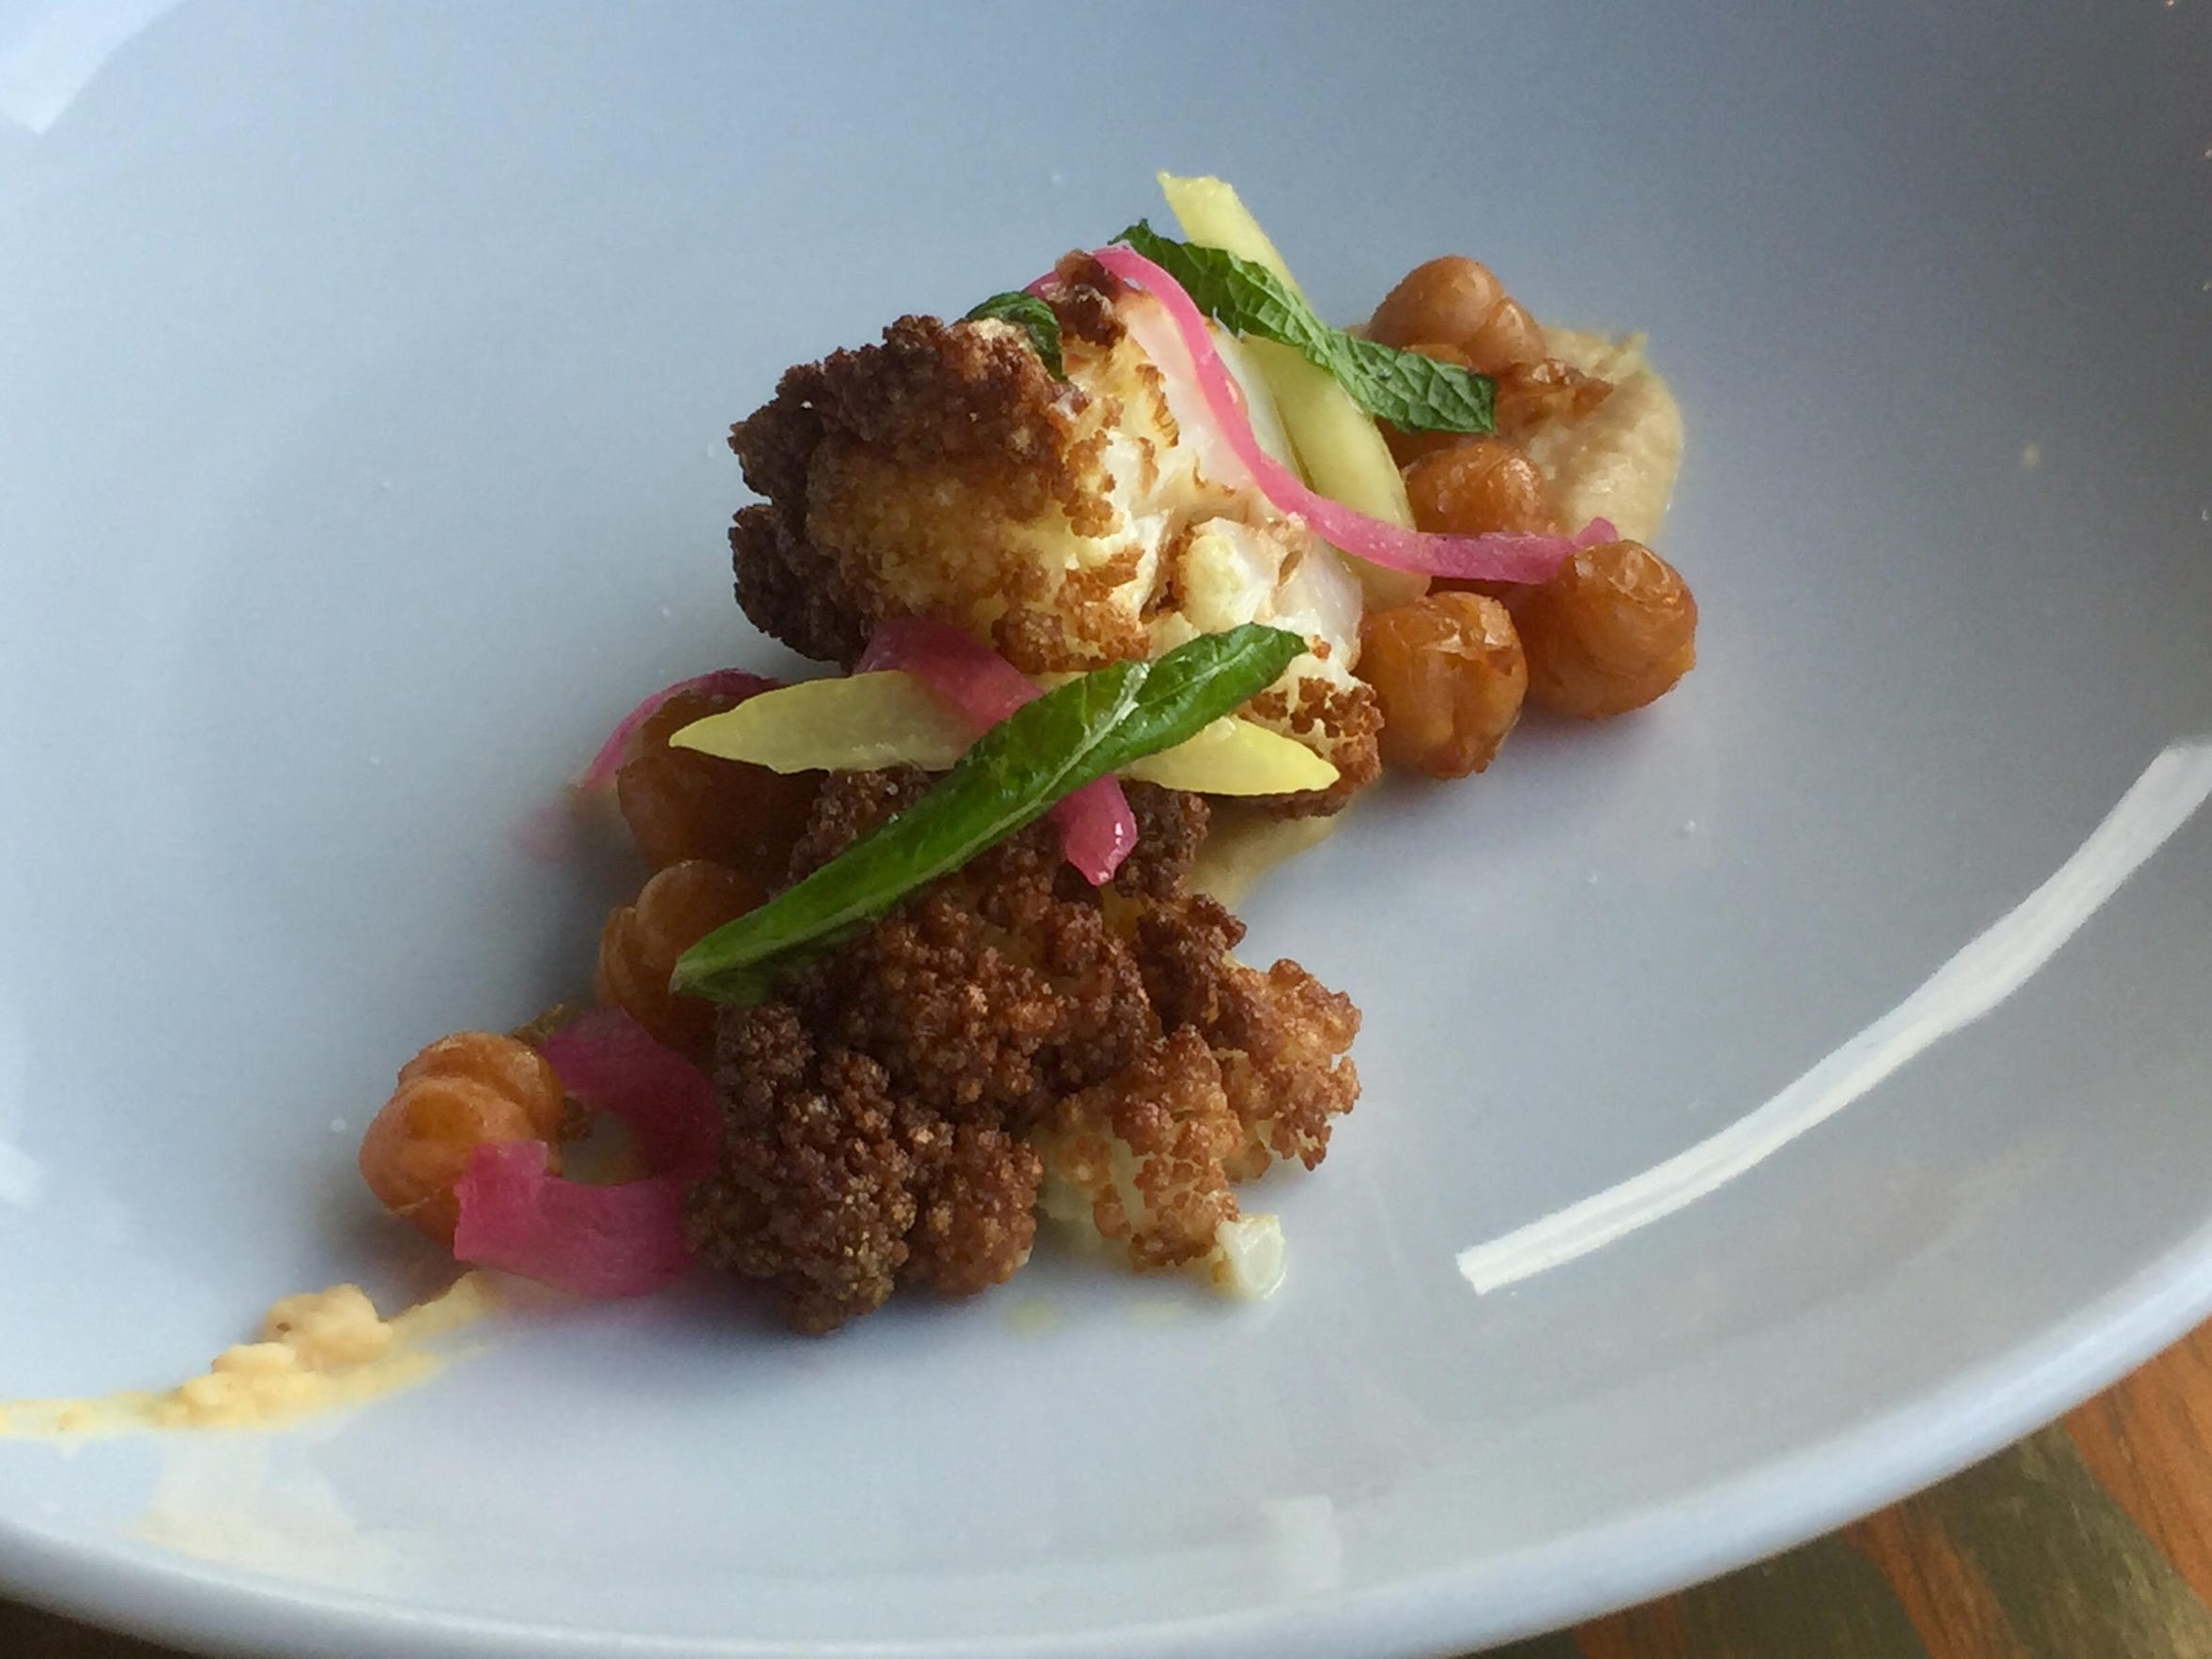 The new menu at Midtown Eats features roasted cauliflower